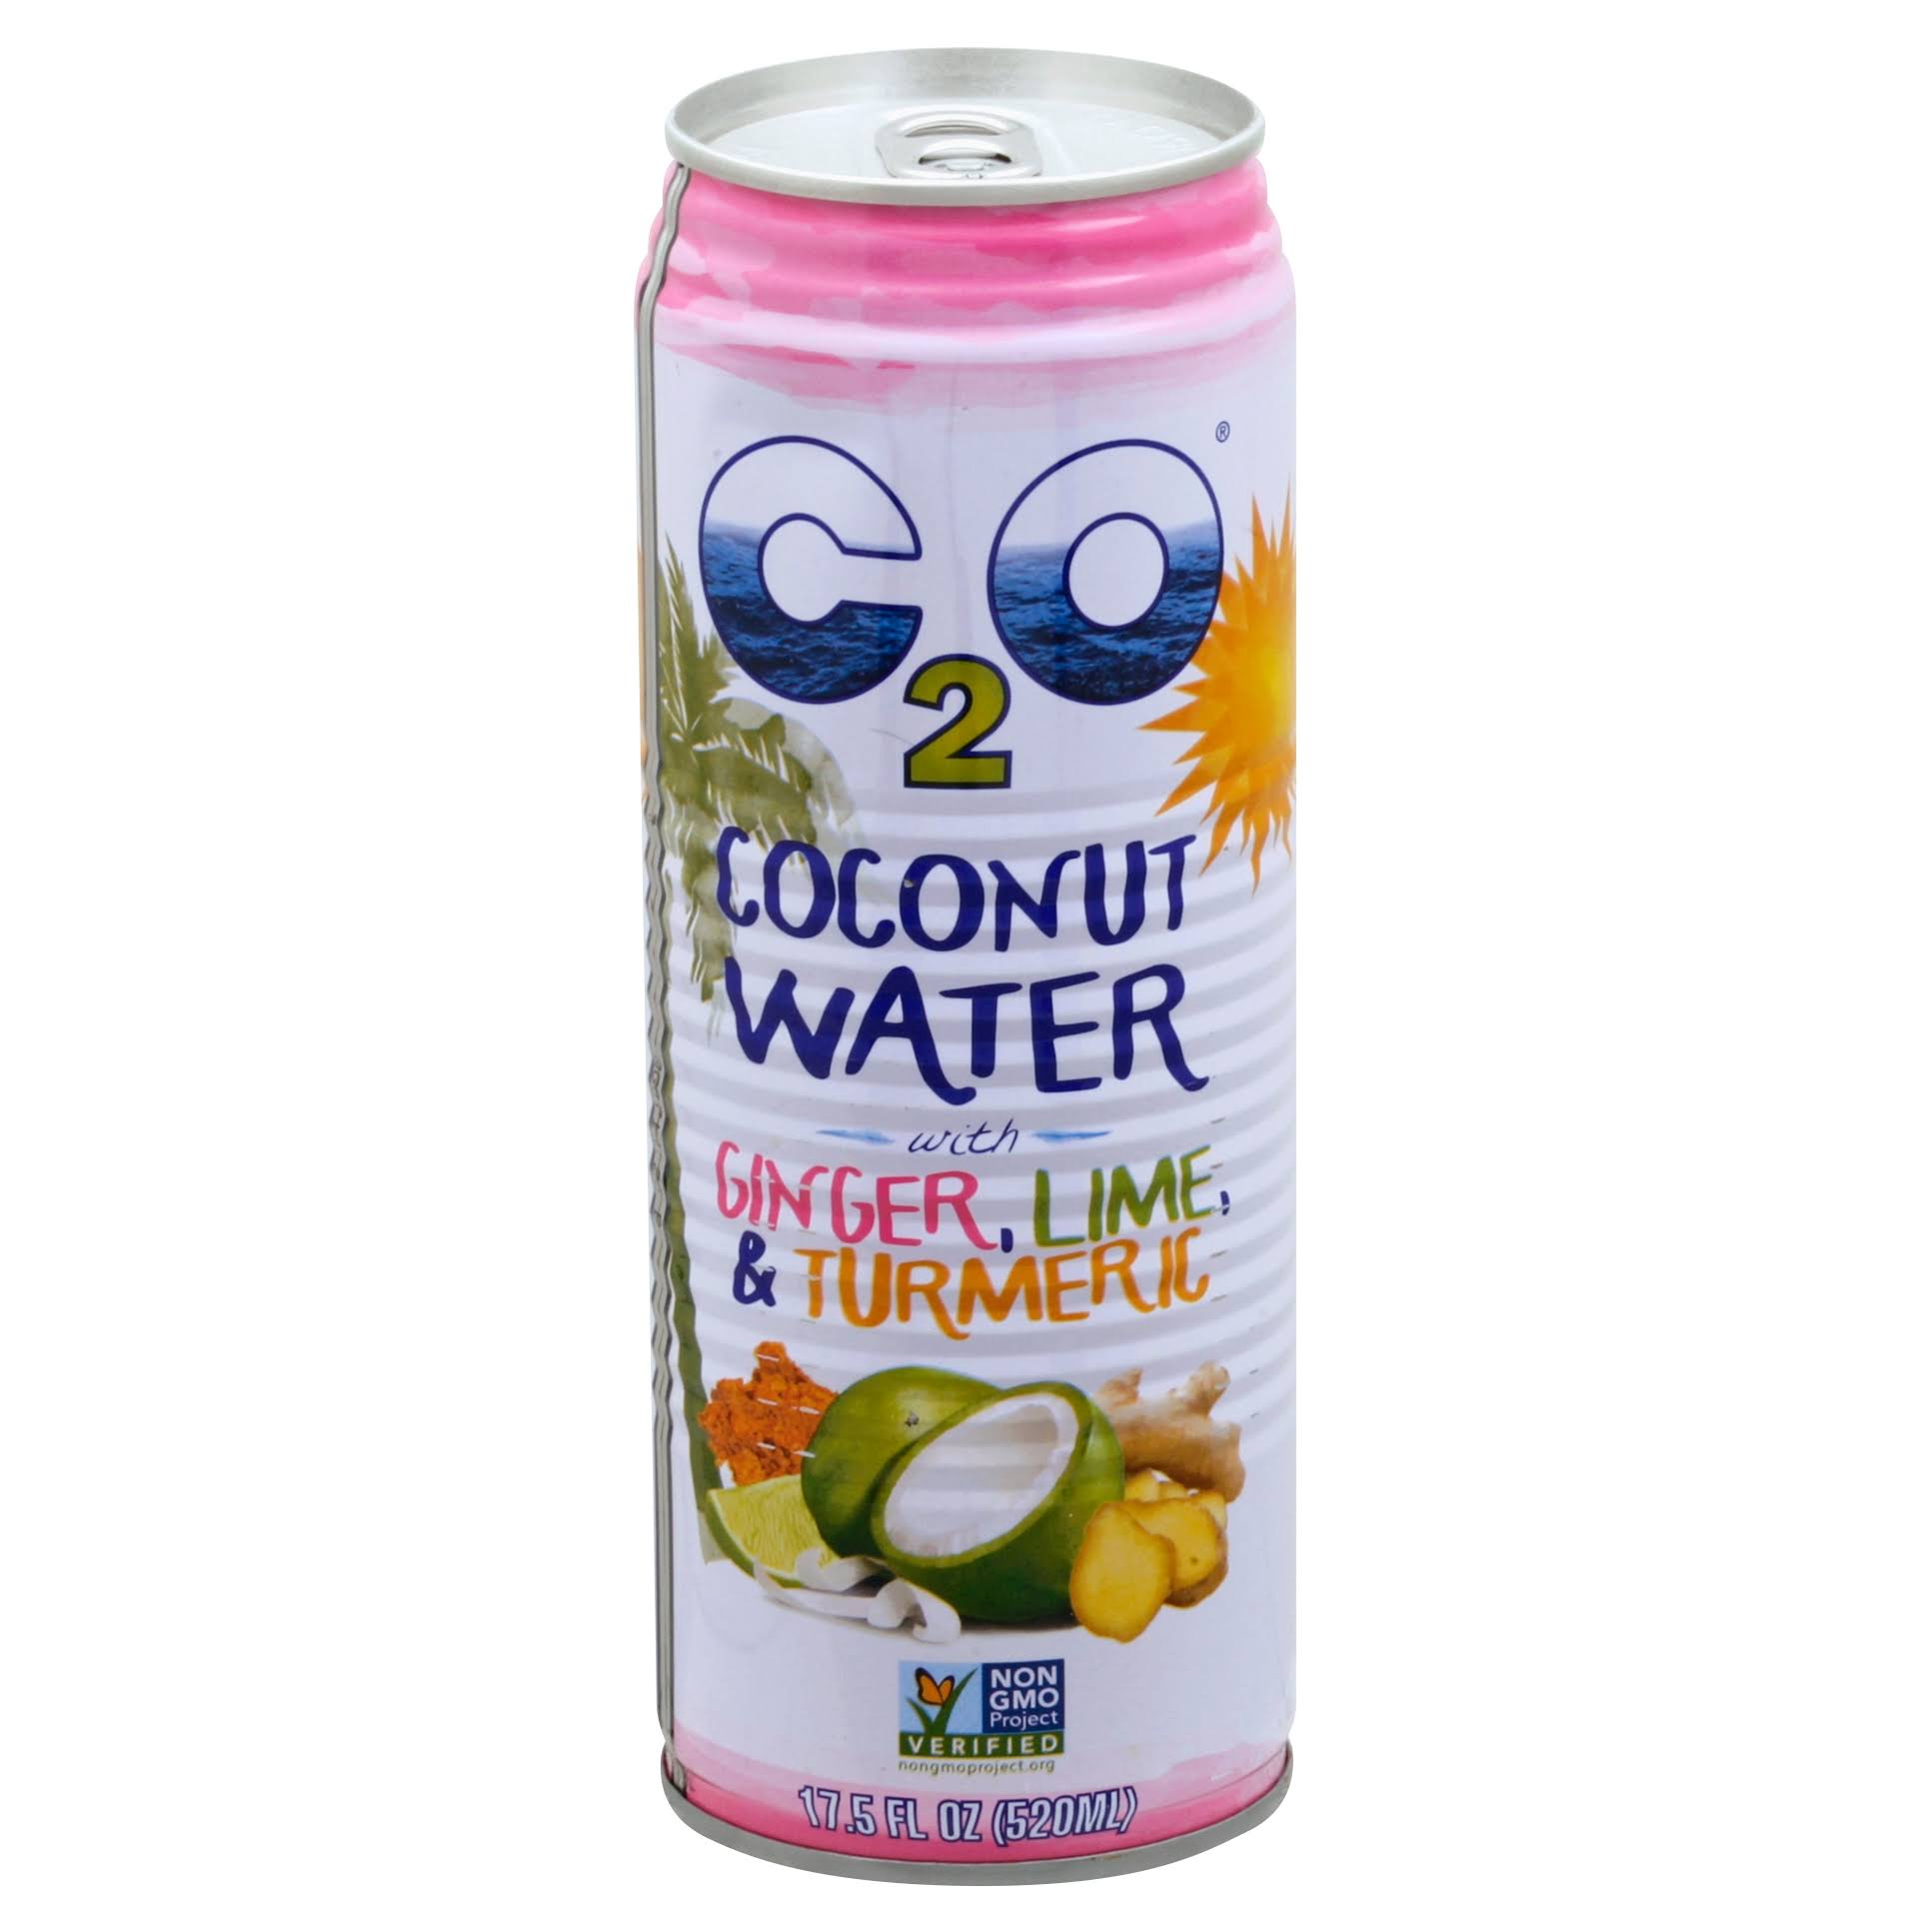 C2O Coconut Water, with Ginger, Lime, & Turmeric - 17.5 fl oz